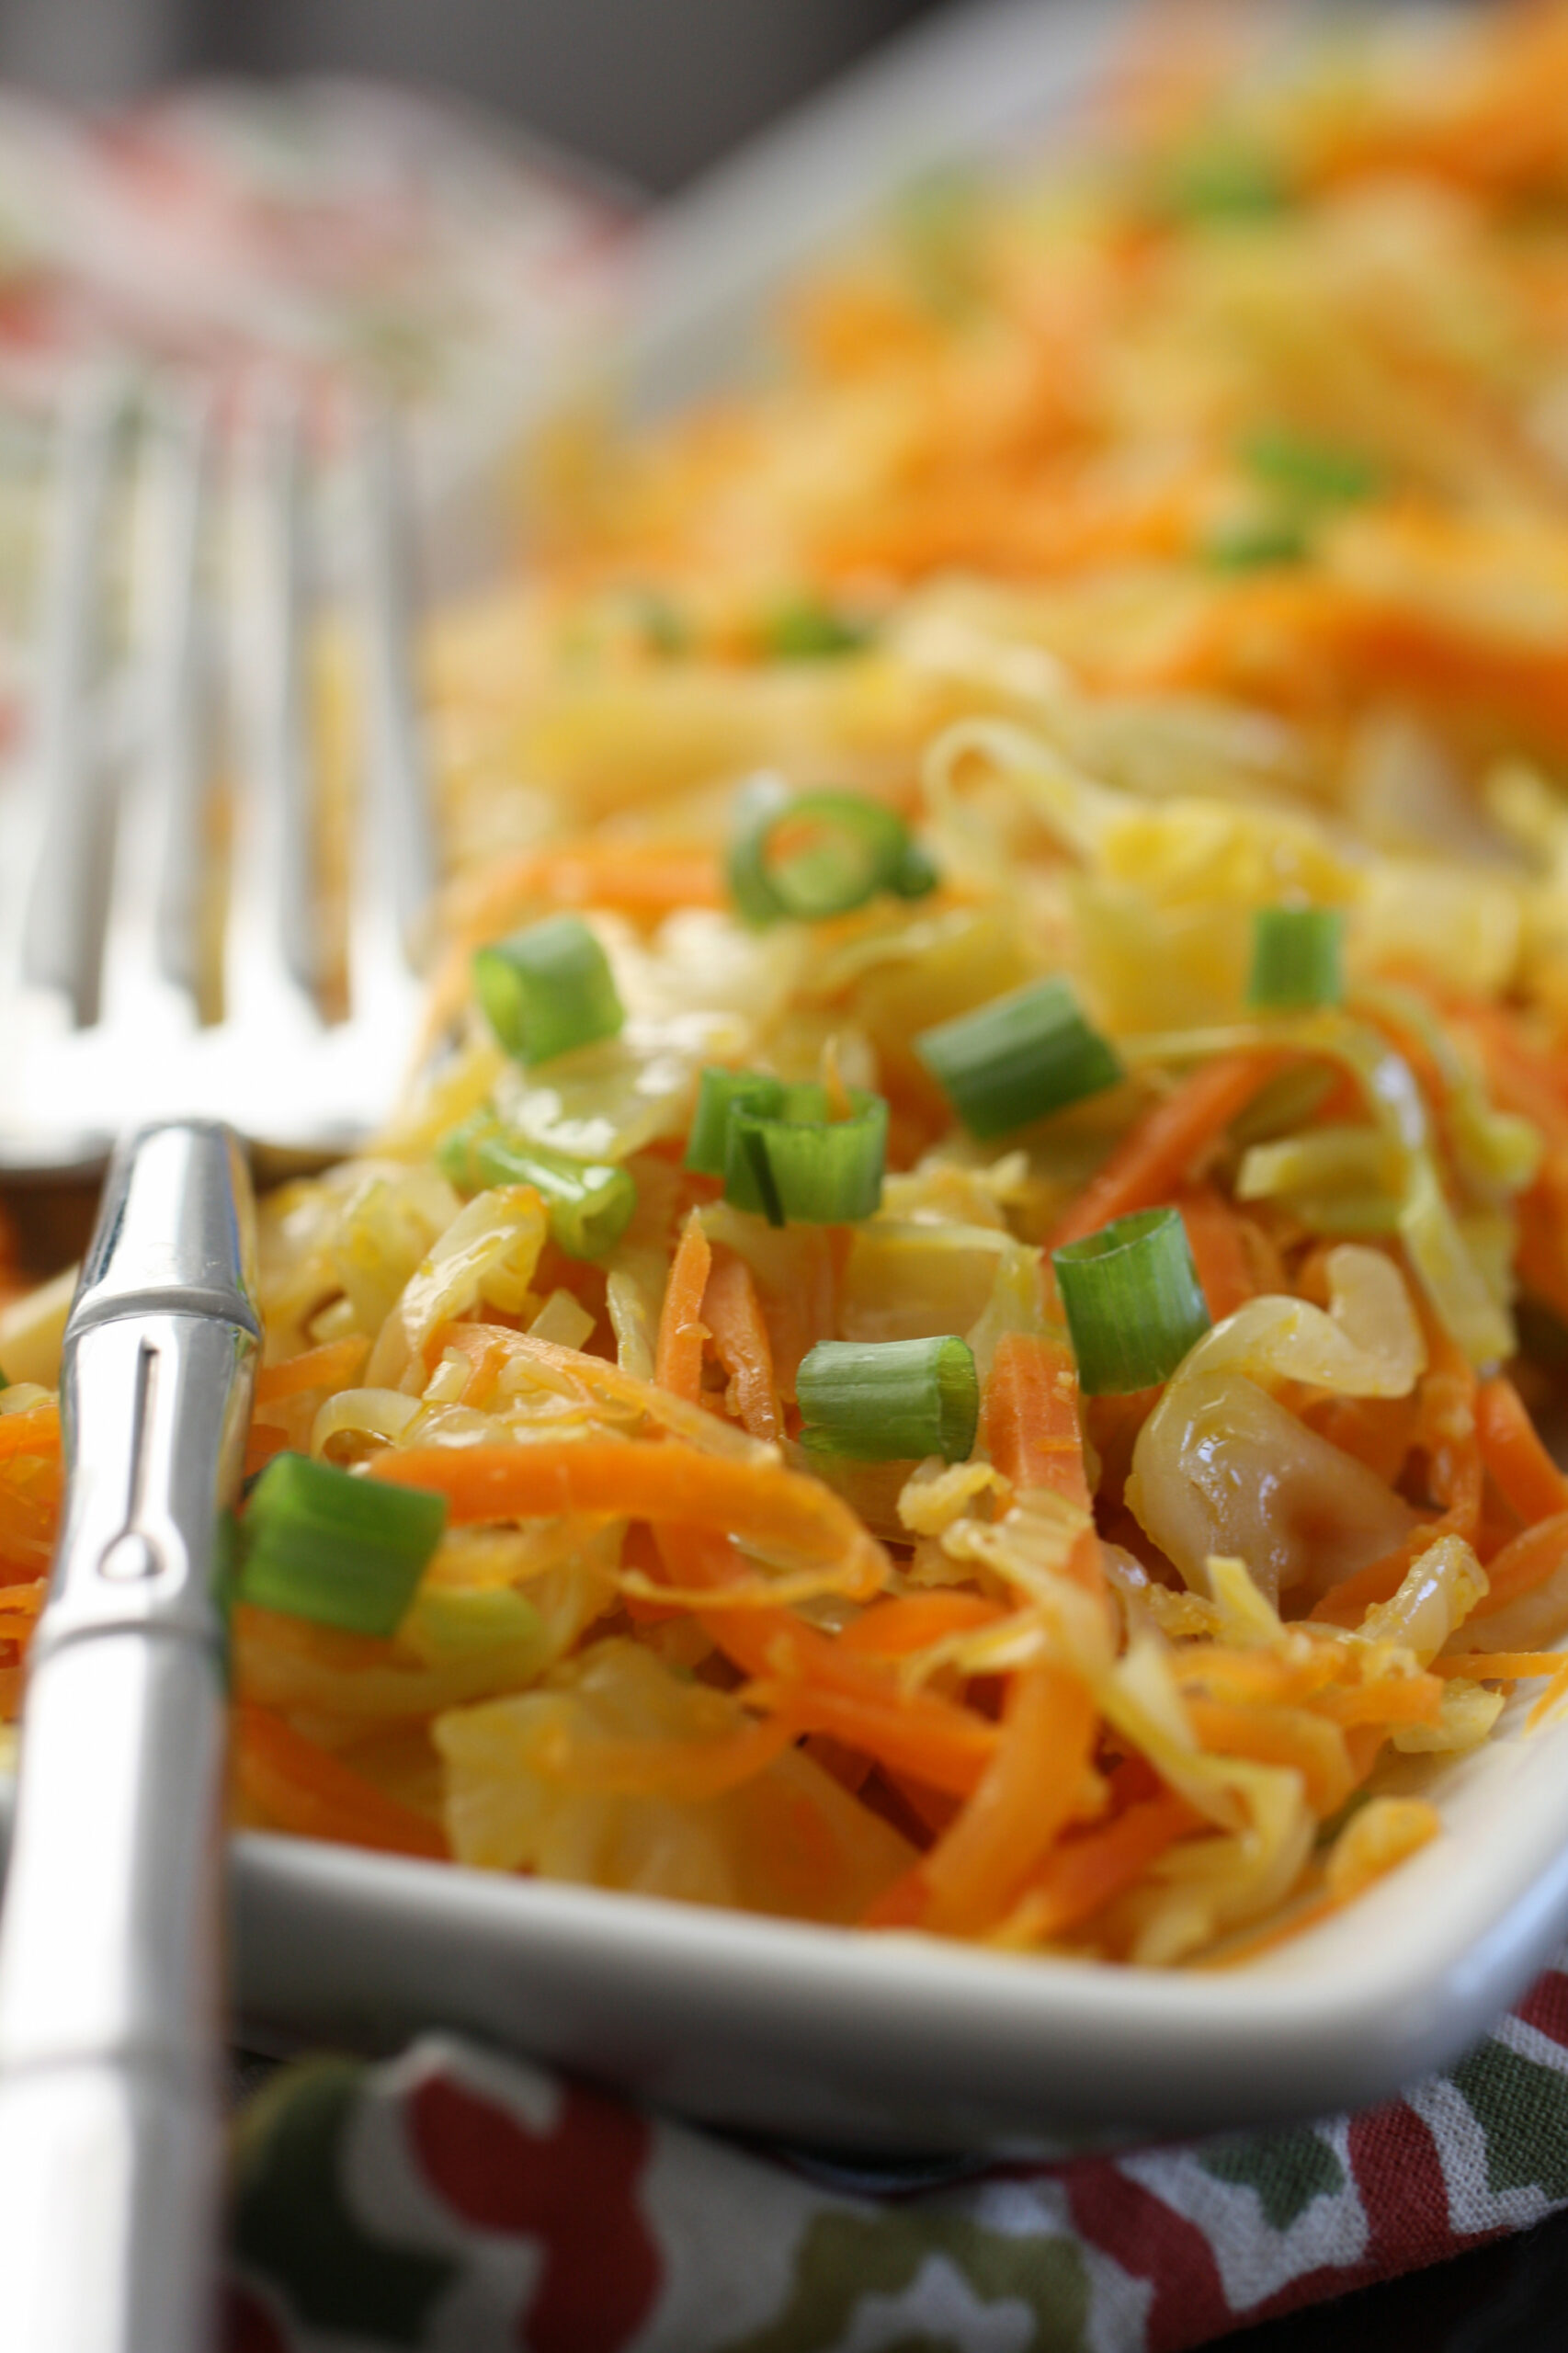 Ginger Fried Cabbage And Carrots (AIP, Paleo, Vegan) - Recipes Paleo Vegetarian